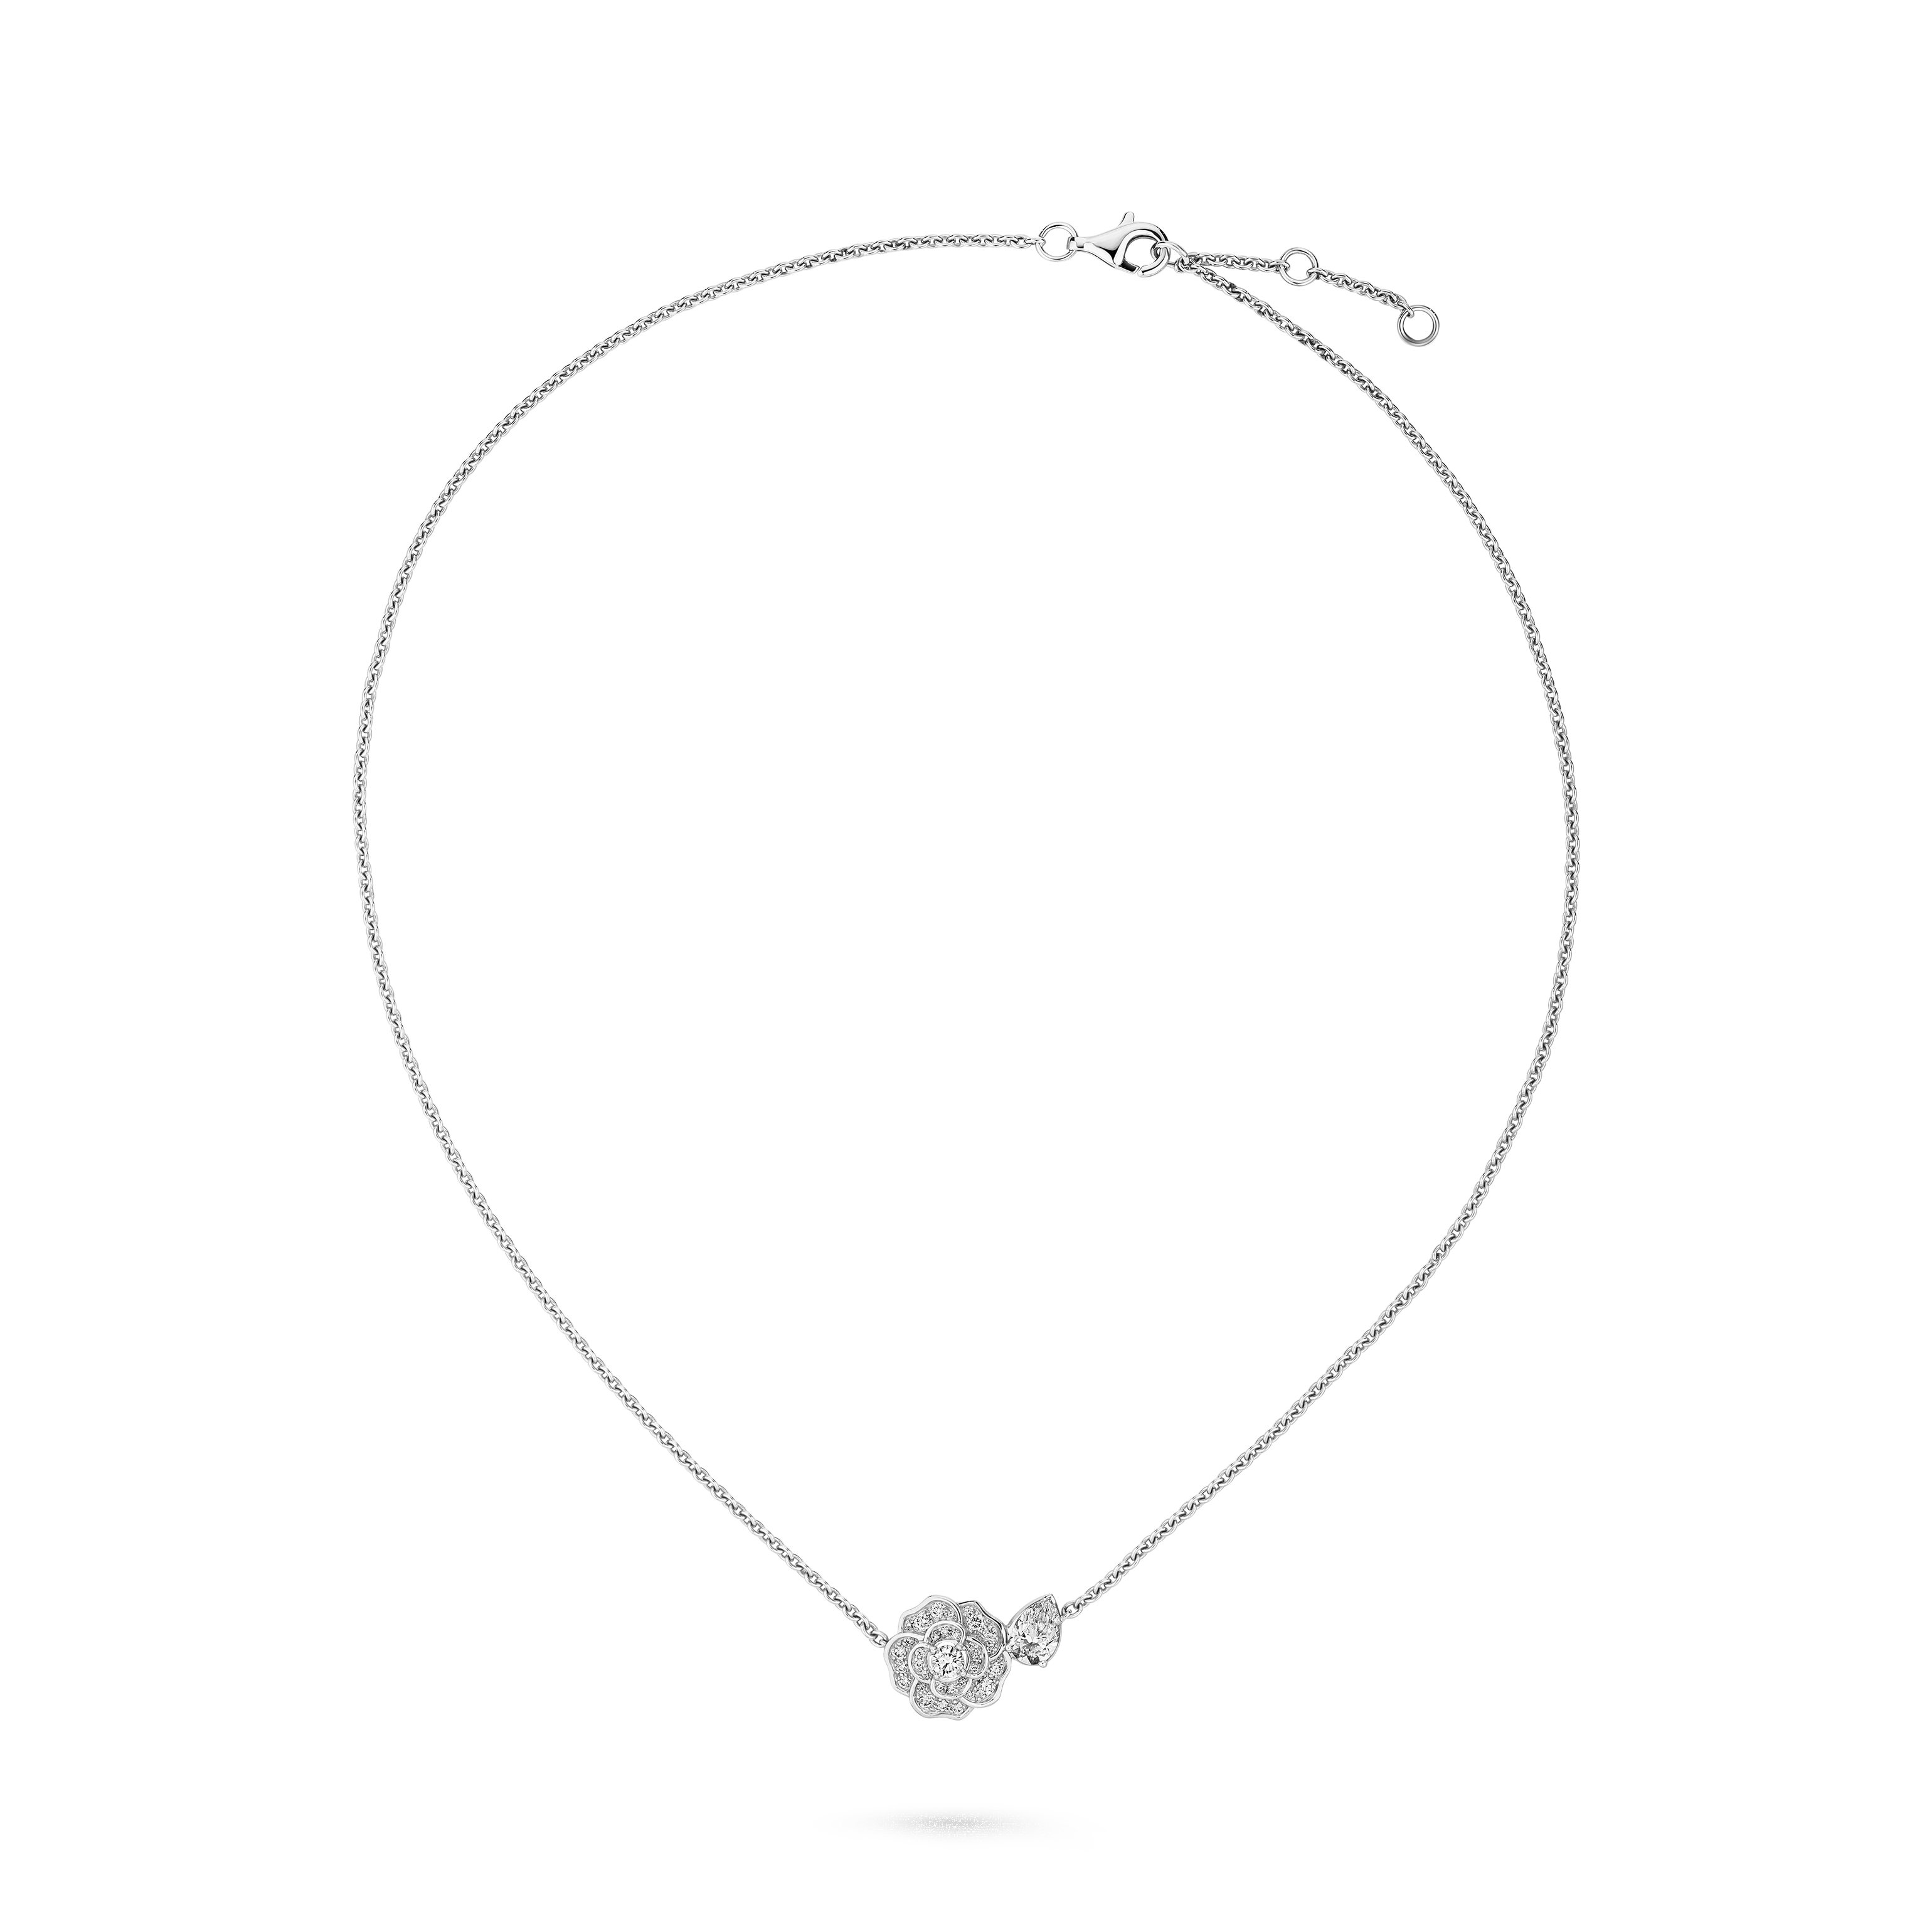 Camélia Précieux necklace - 18K white gold, diamonds - CHANEL - Default view - see standard sized version